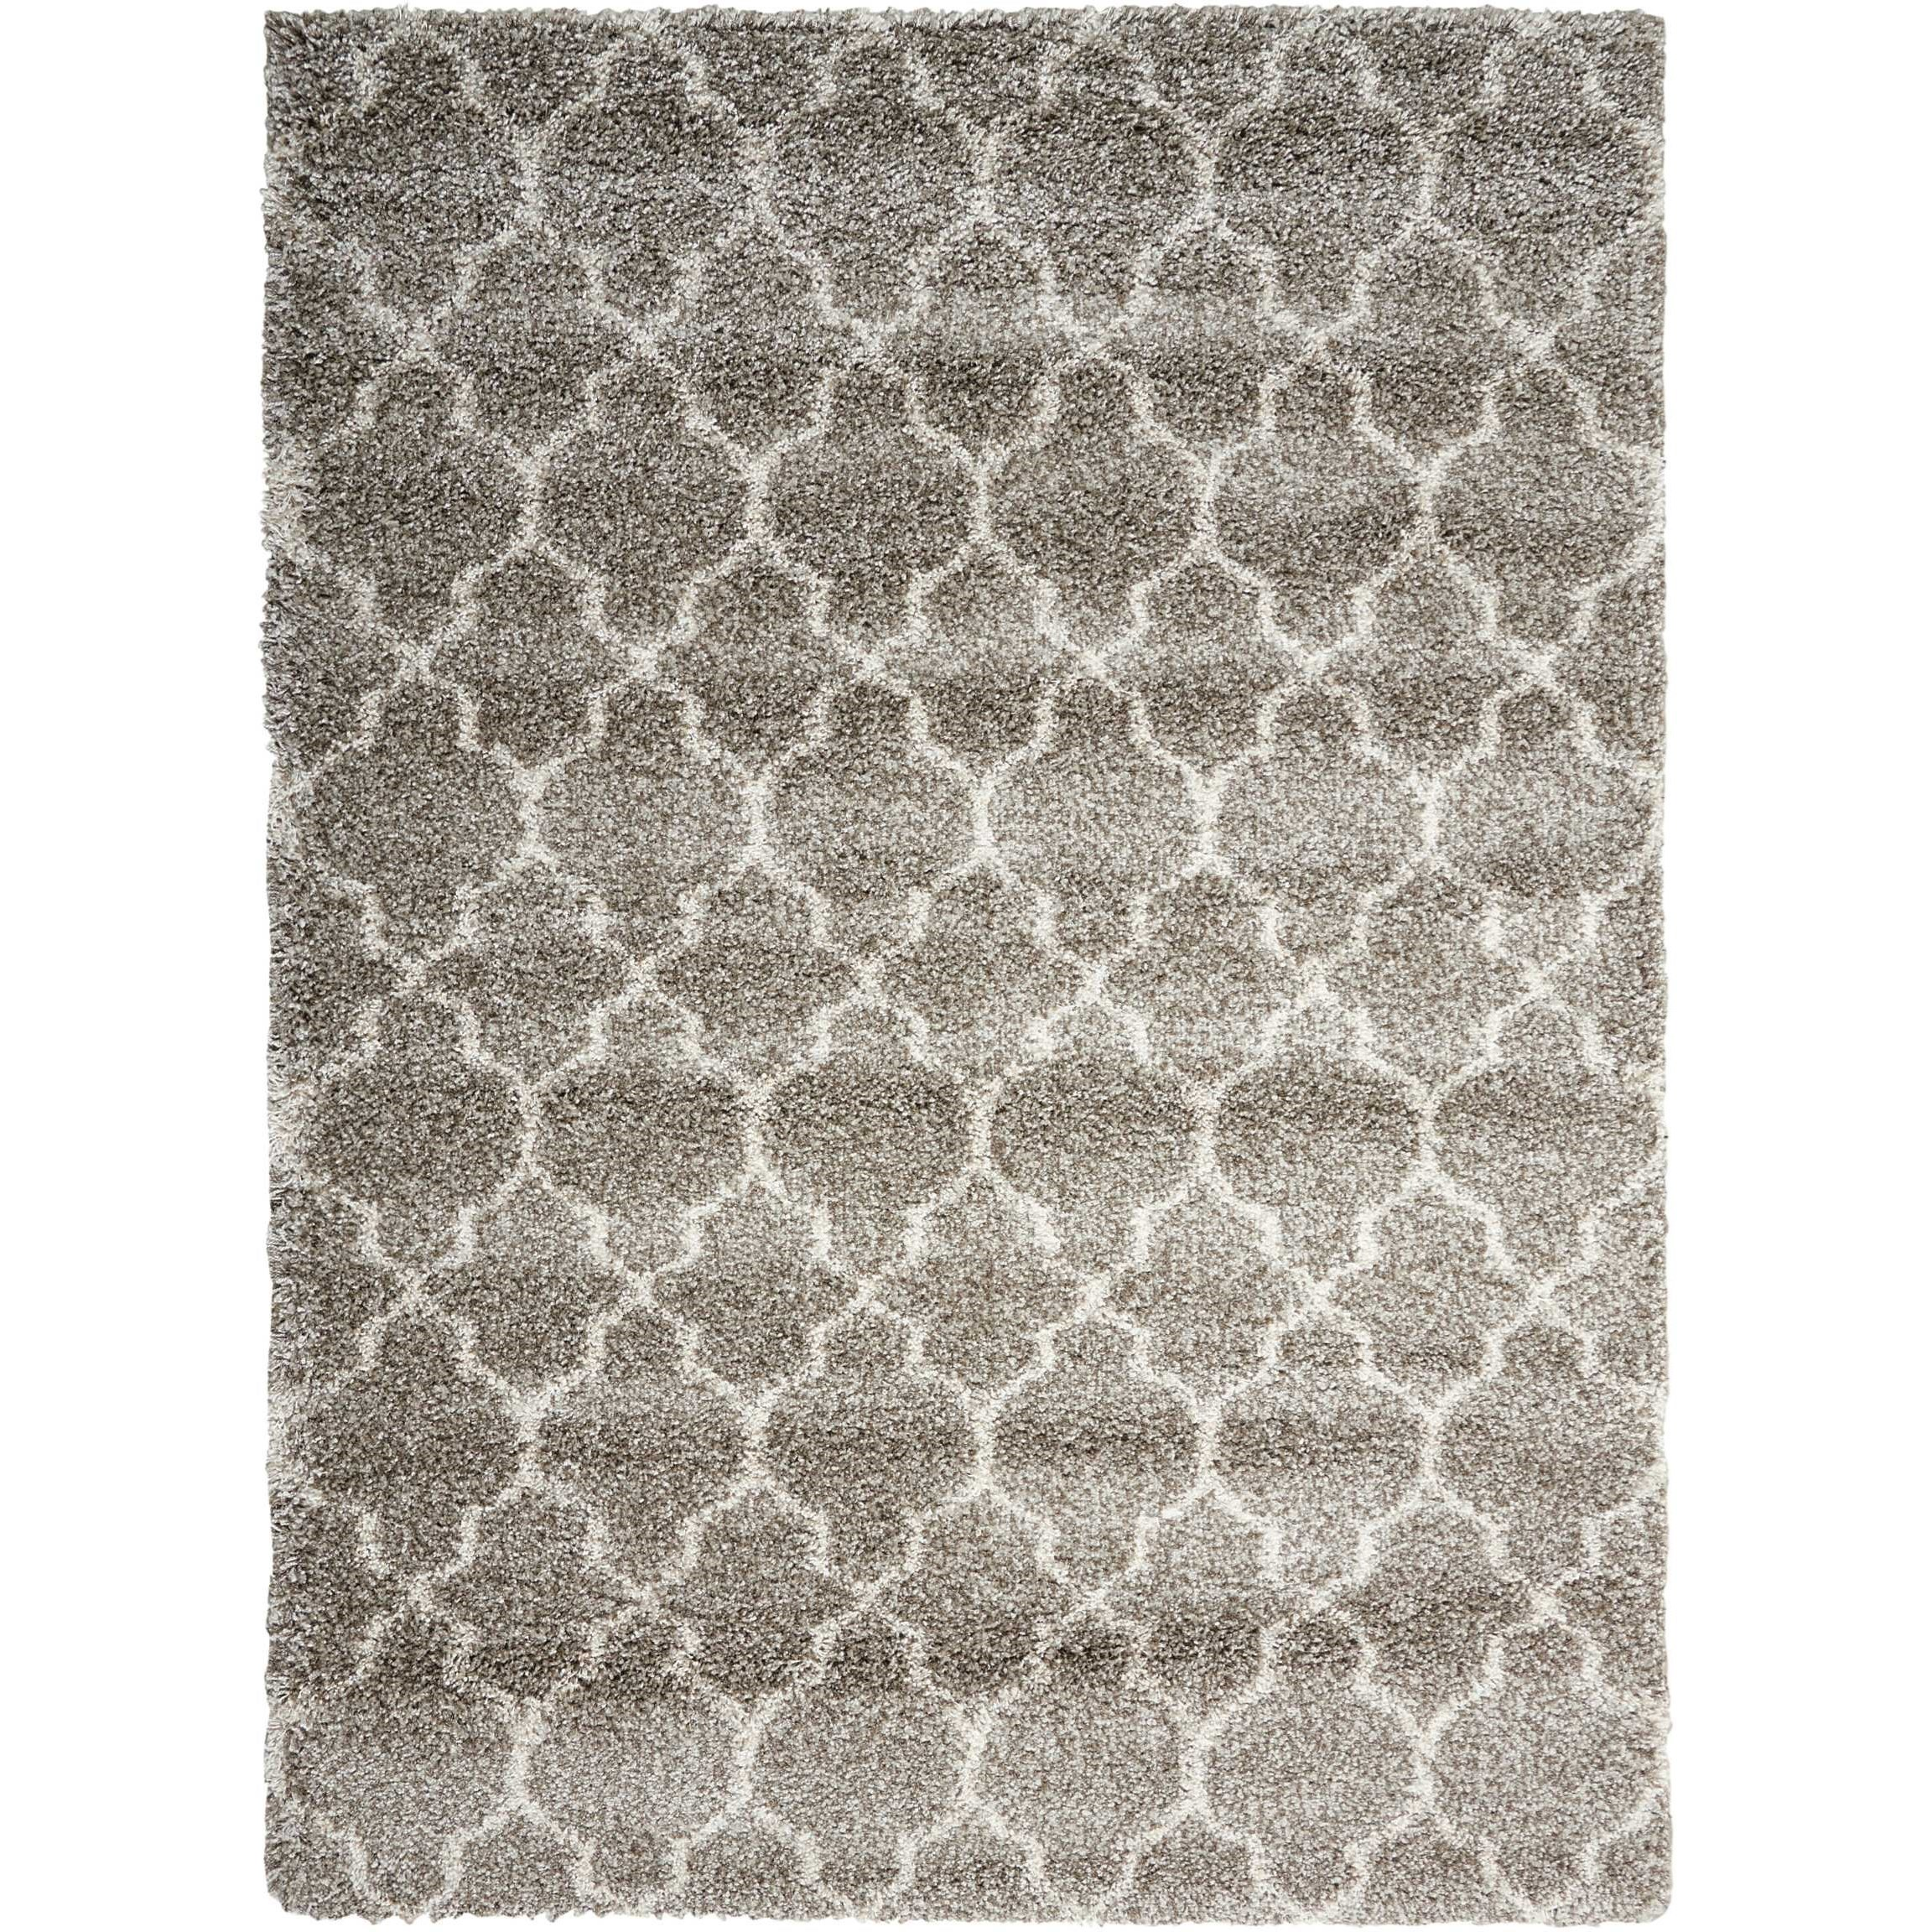 """Amore 3'2"""" x 5' Stone Rectangle Rug by Nourison at Home Collections Furniture"""